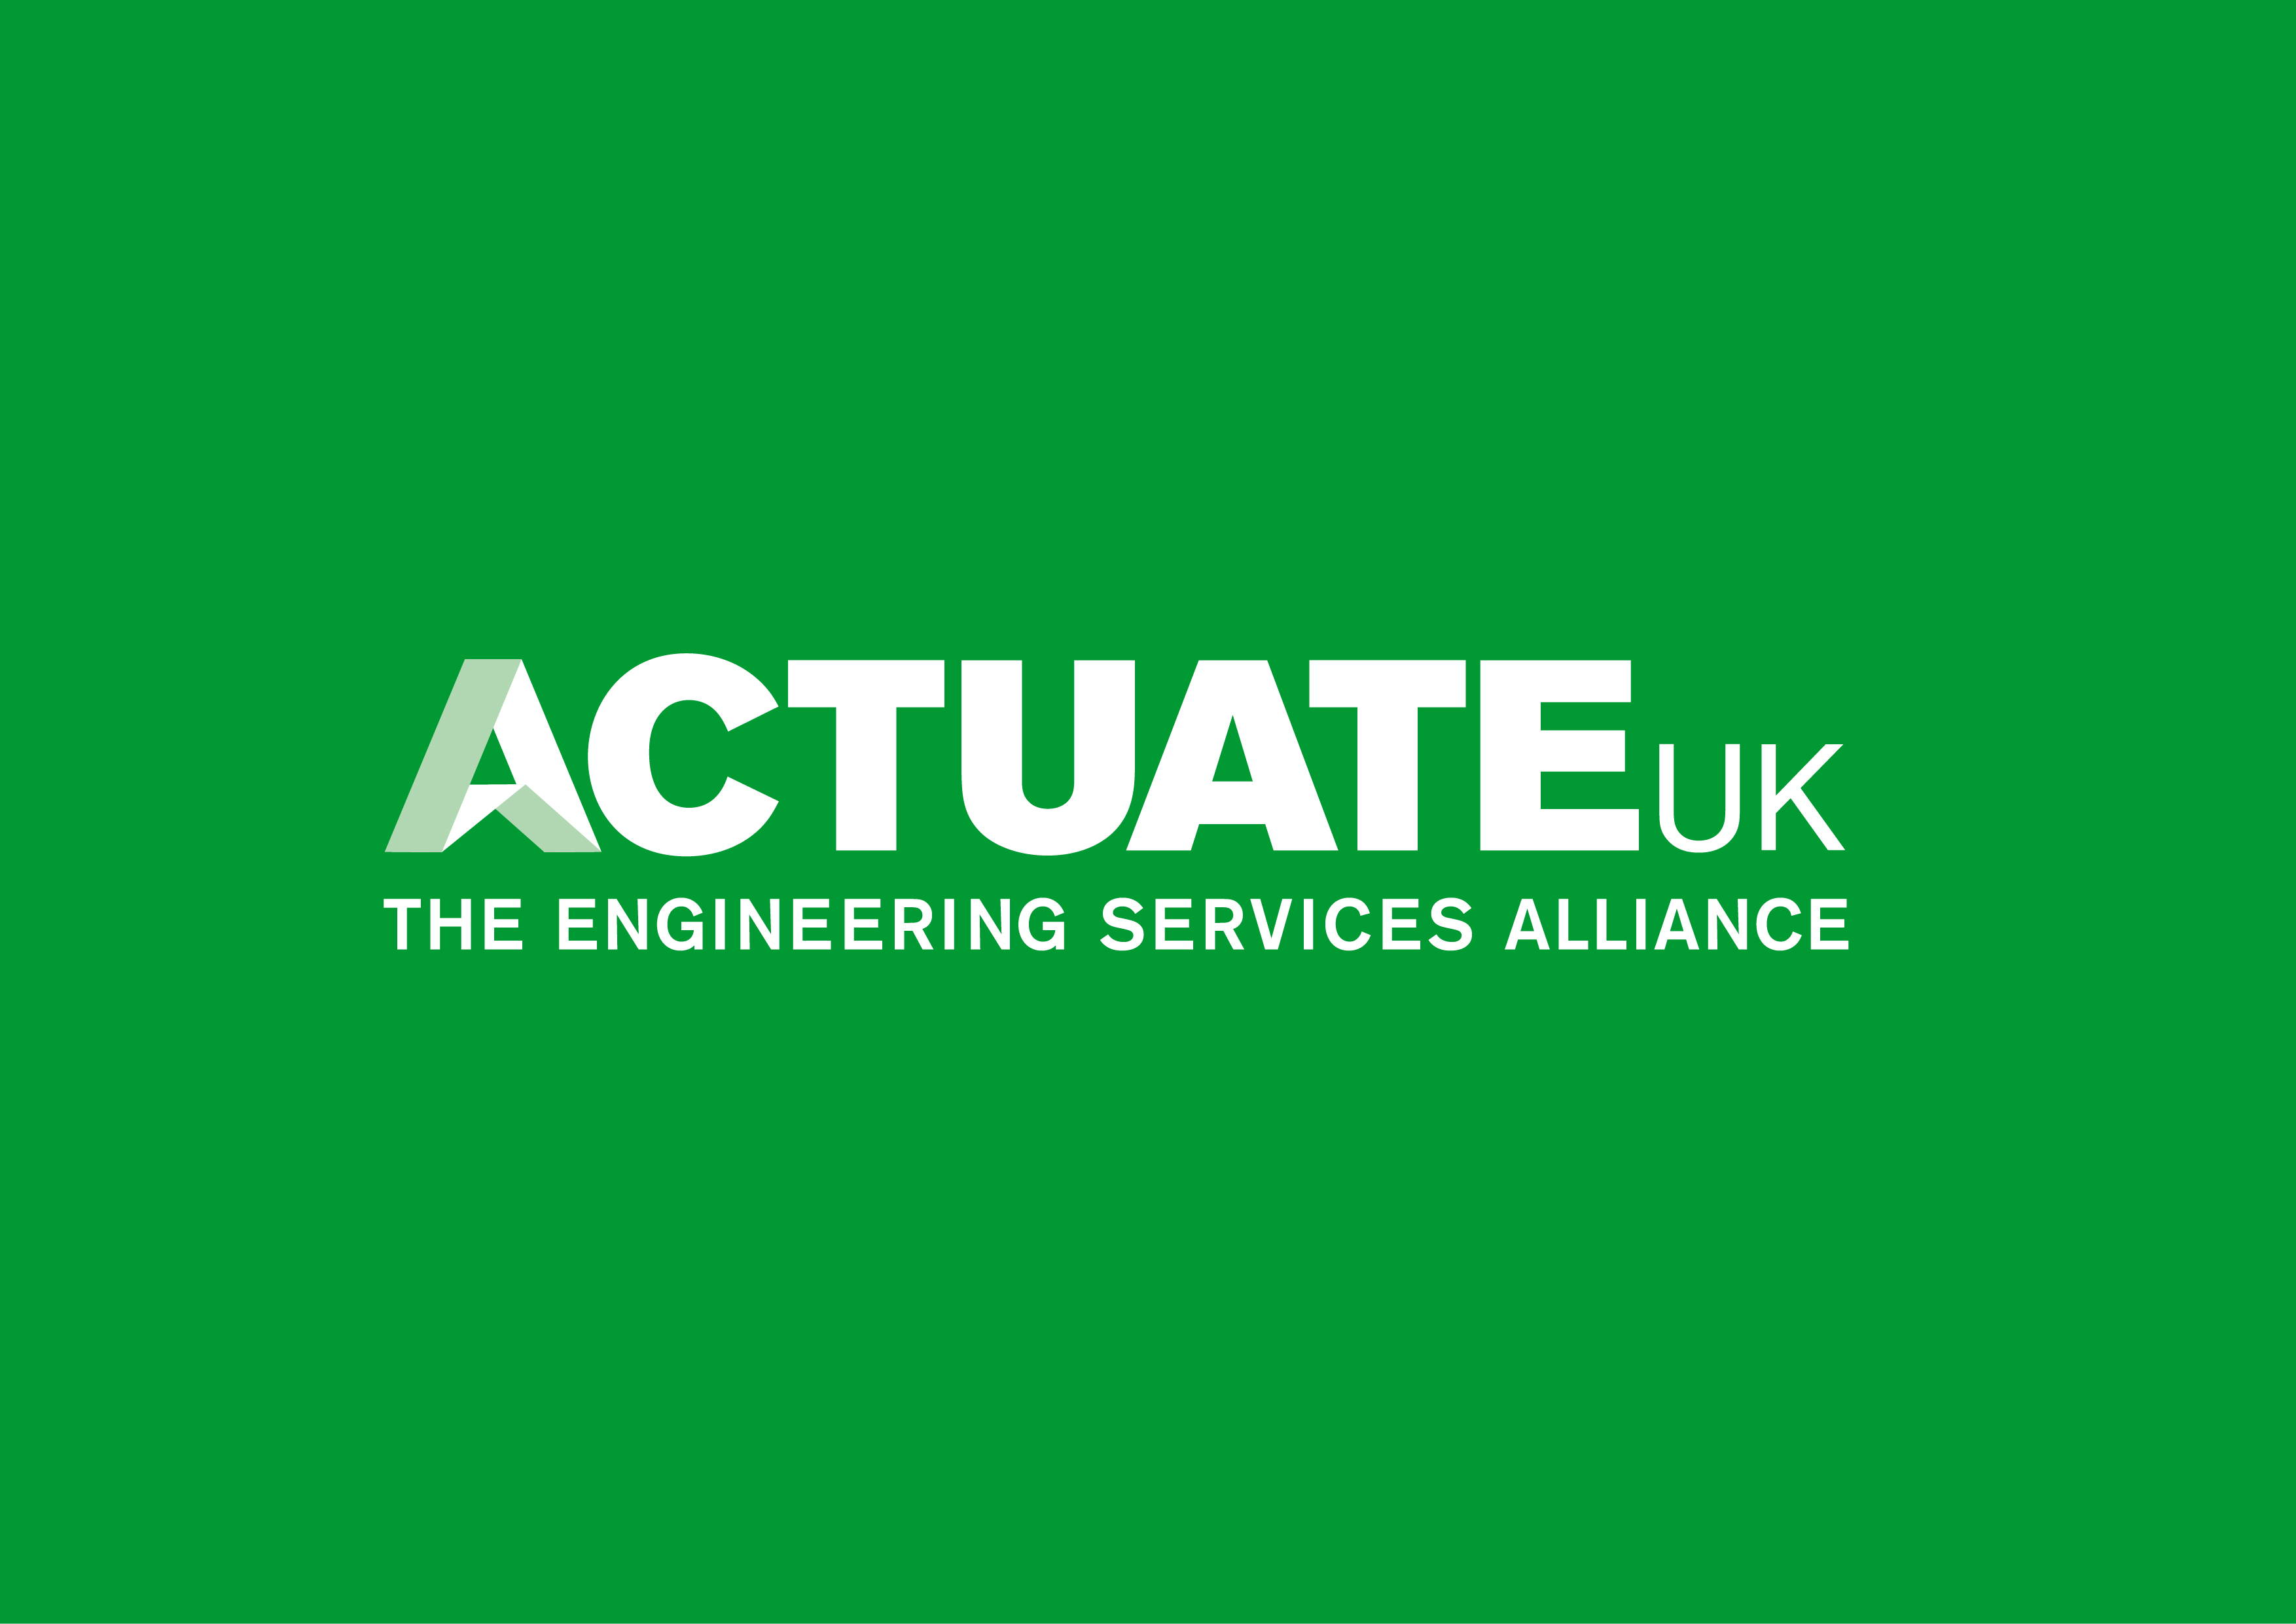 Re-watch the launch of Actuate UK